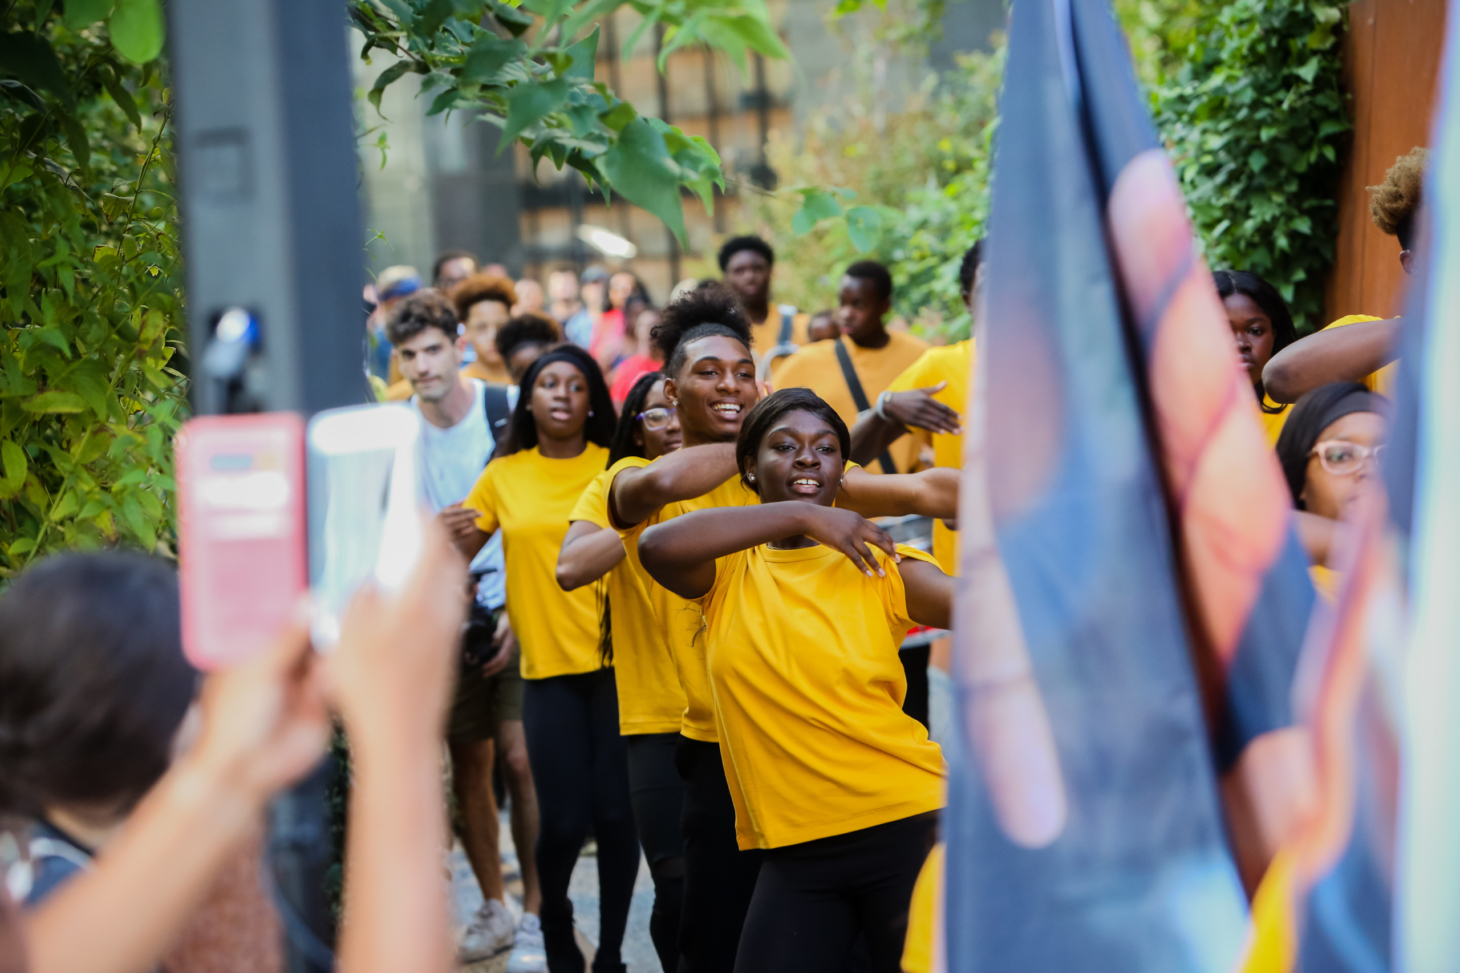 A group of young Black steppers performs on the high line.